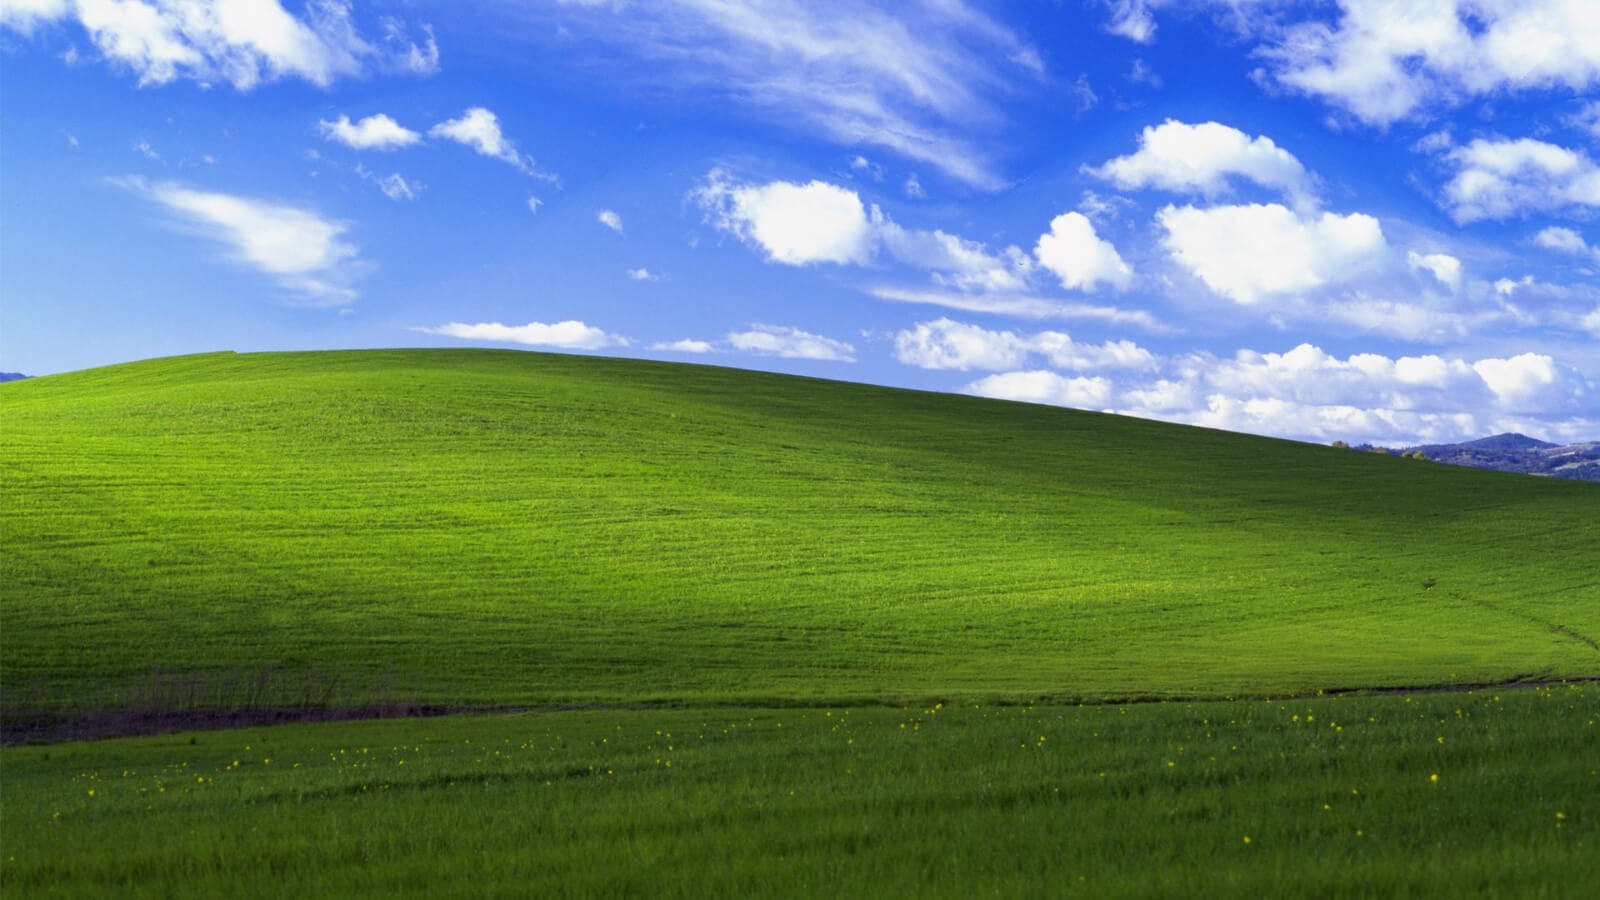 Microsoft patches major vulnerability in Windows 7 and XP to